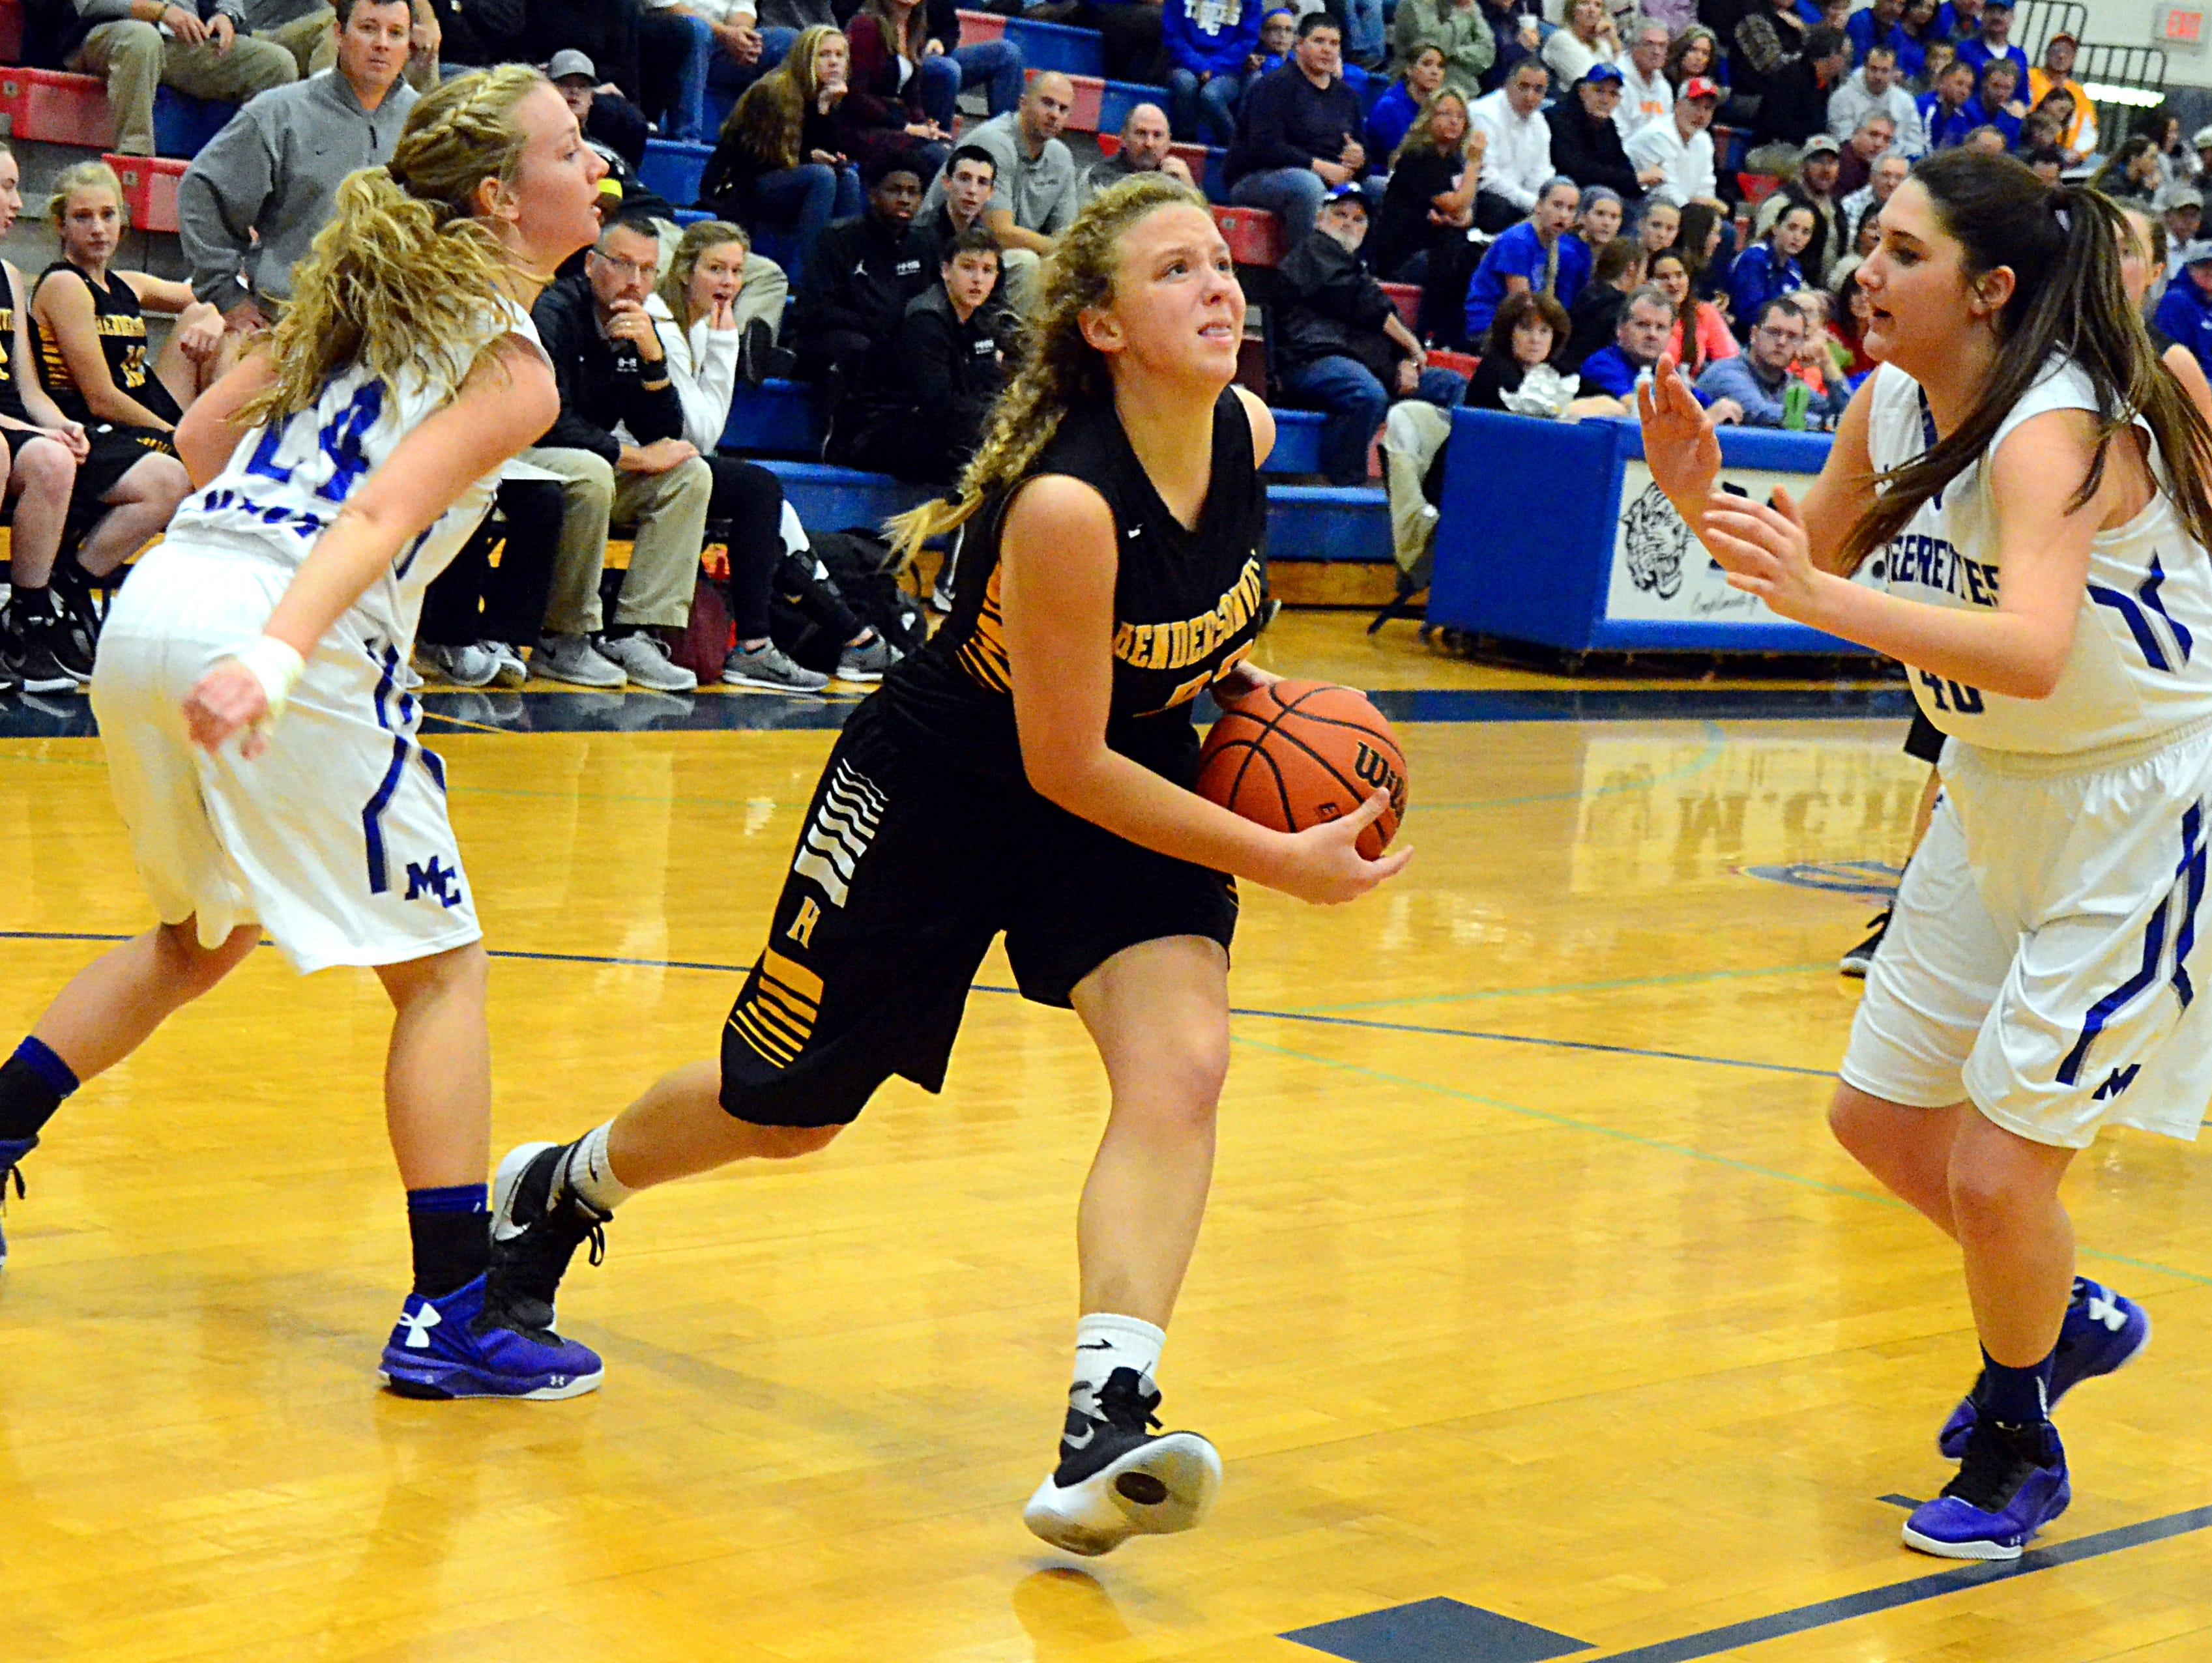 Hendersonville High junior Makensie Cotter drives toward the basket between Macon County juniors Sarah Carter (left) and Kinsley Green during fourth-quarter action.